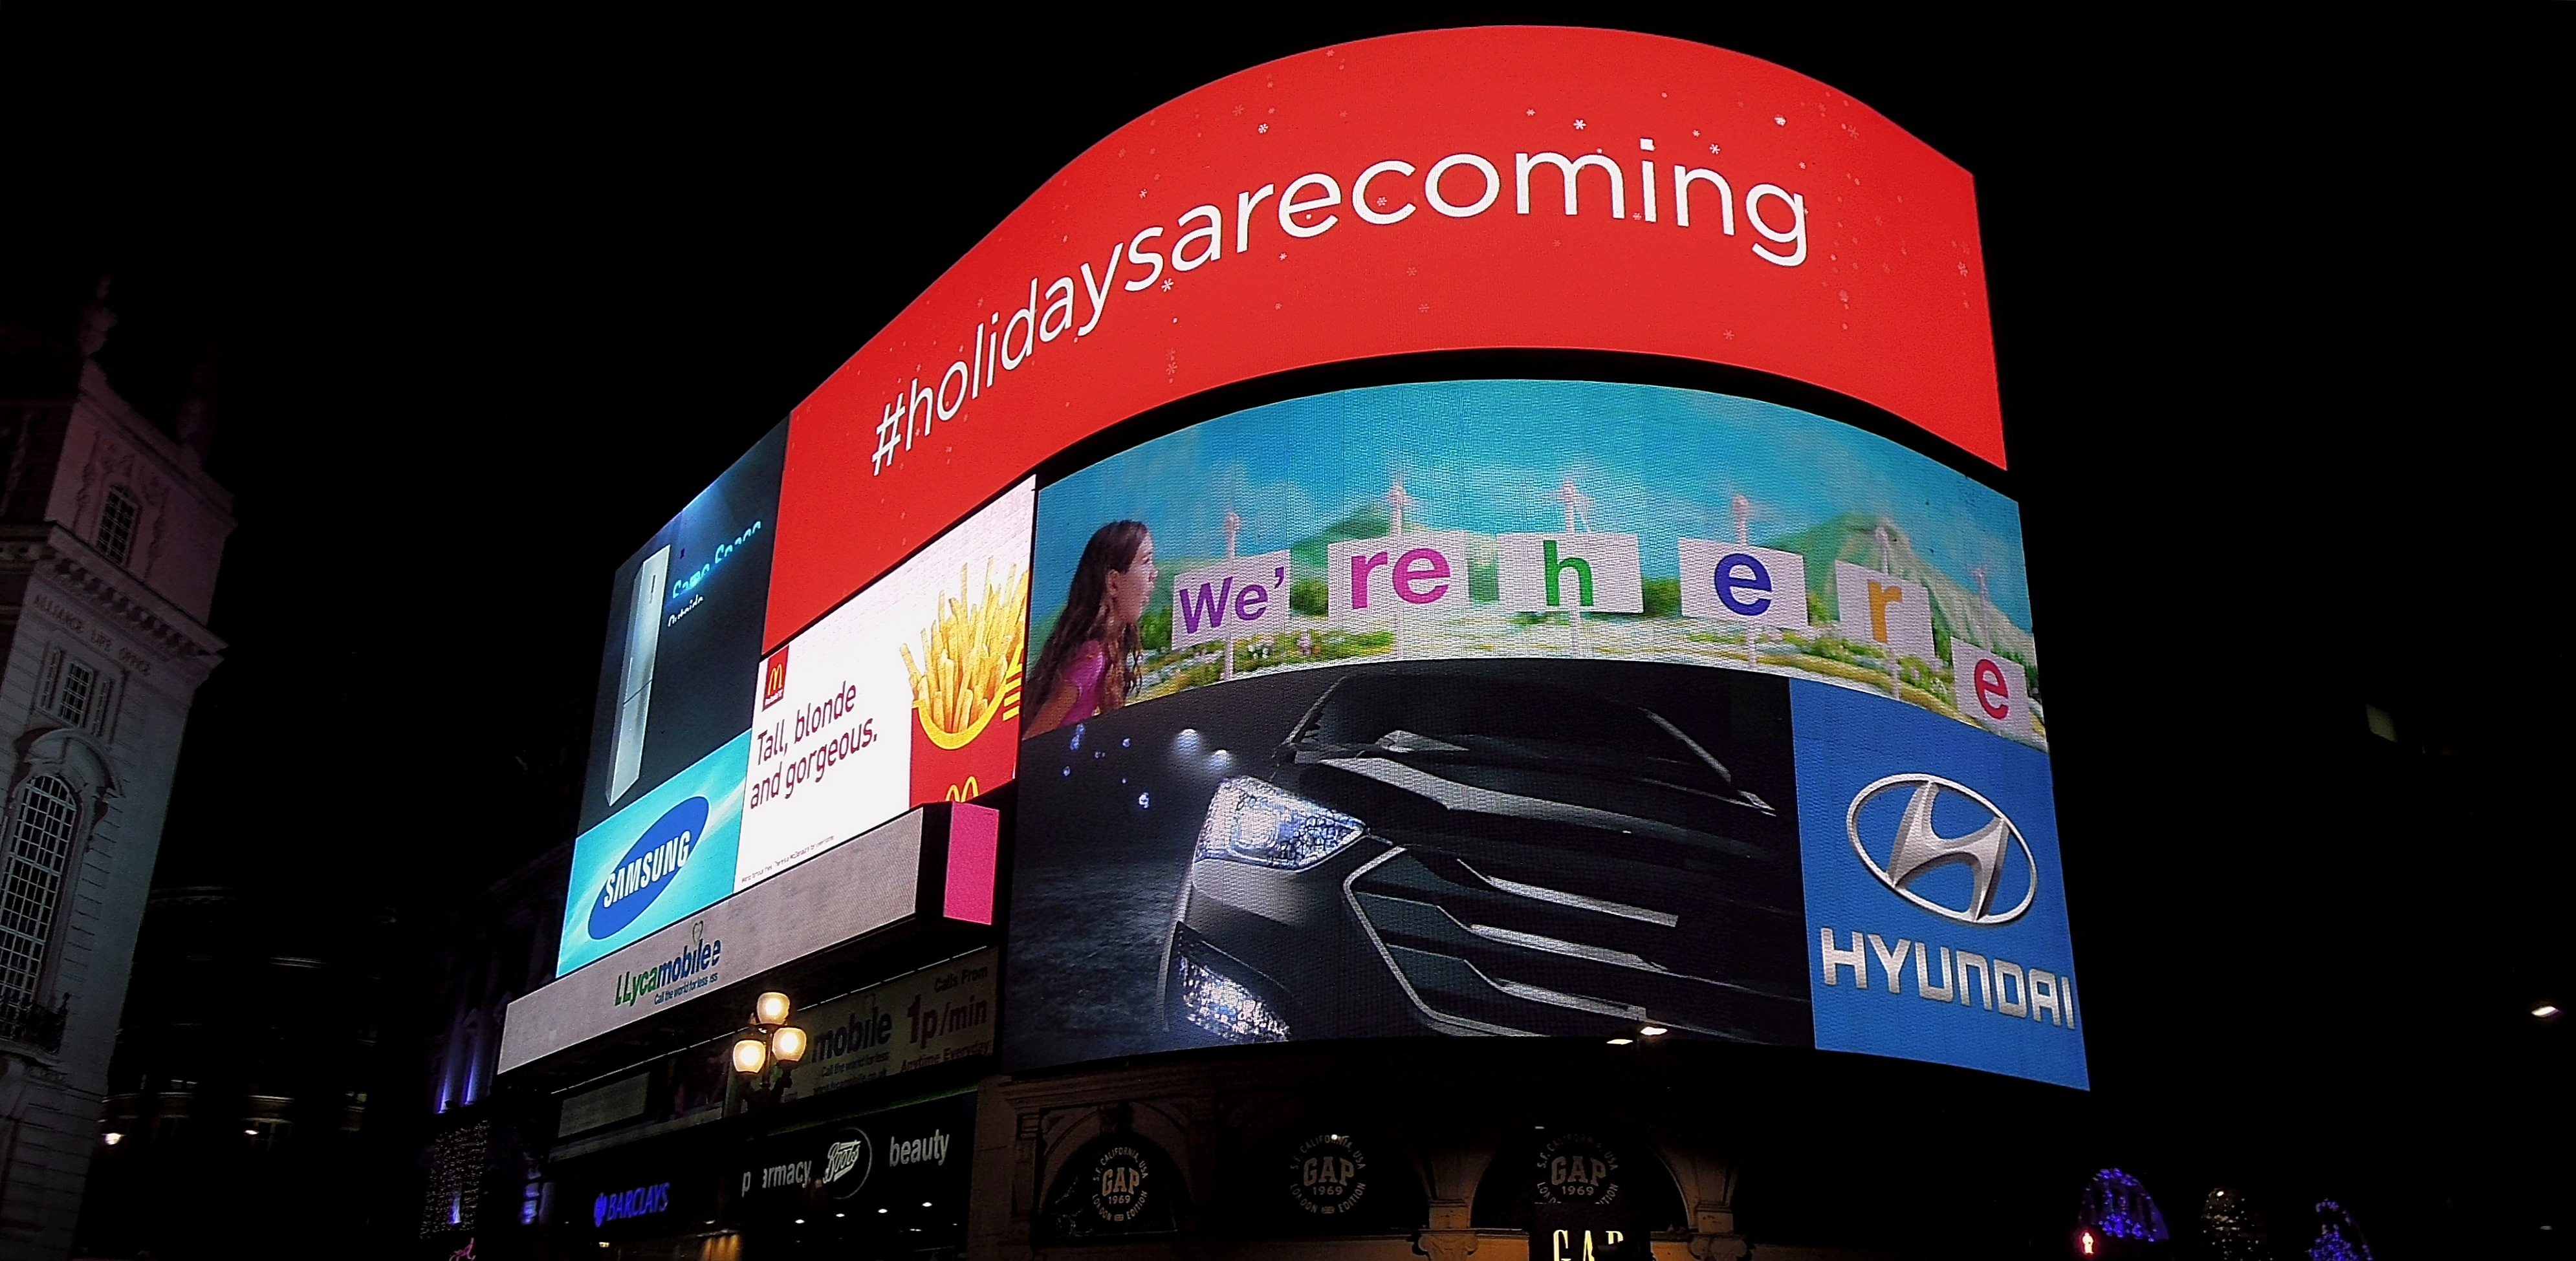 piccadilly-circus-london-billboard